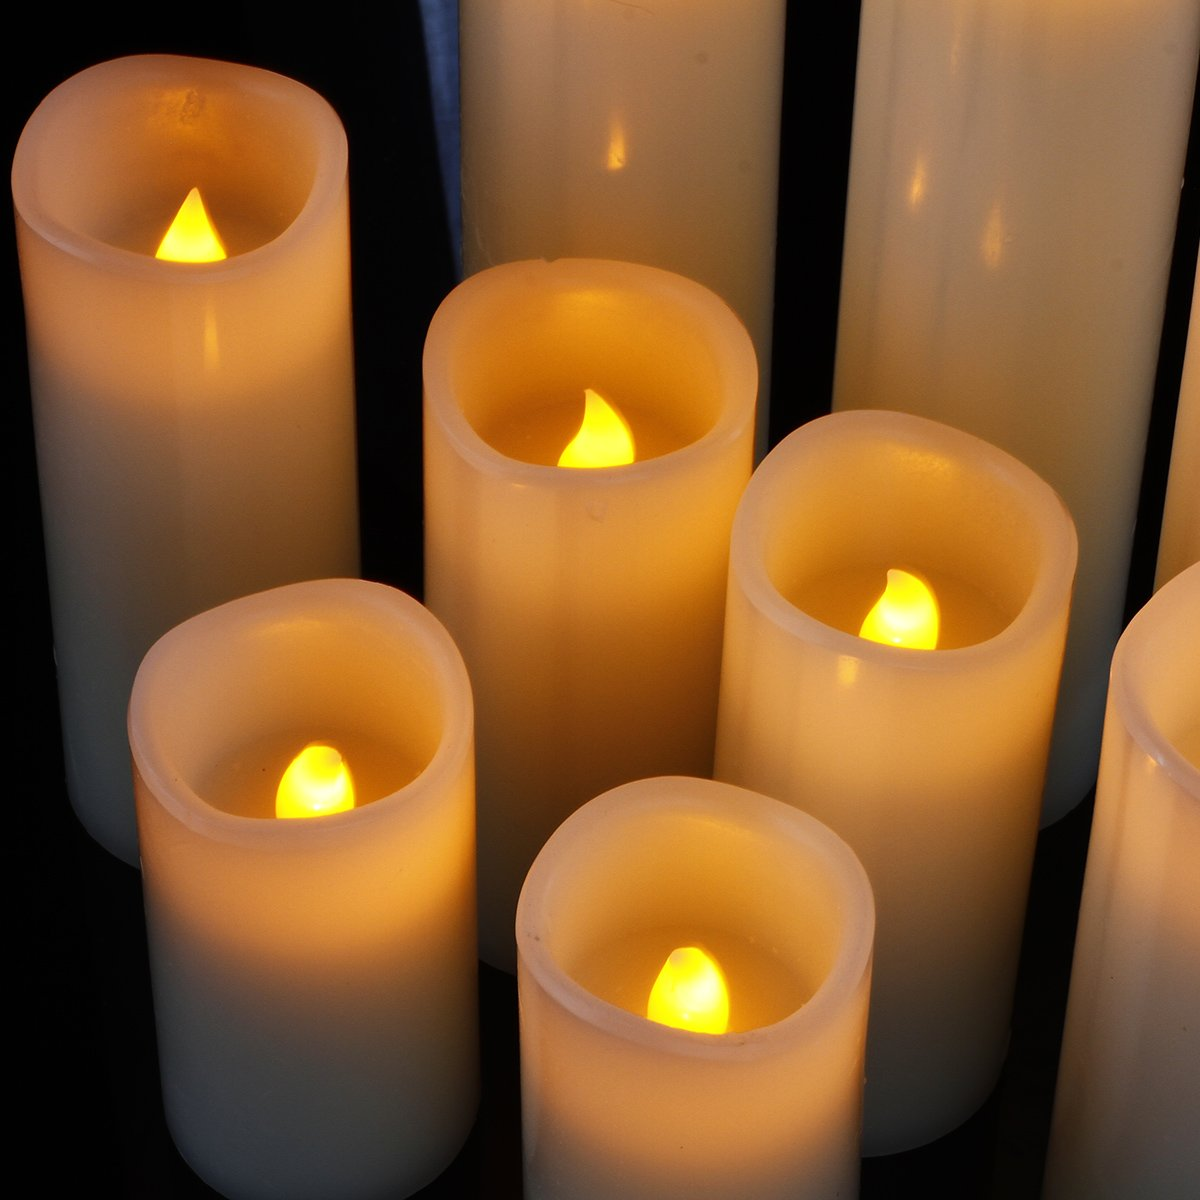 Flameless Candles, Led Candles Set of 9(H 4'' 5'' 6'' 7'' 8'' 9'' xD 2.2'') Ivory Real Wax Battery Candles With Remote Timer by (Batteries not included) by comenzar (Image #7)